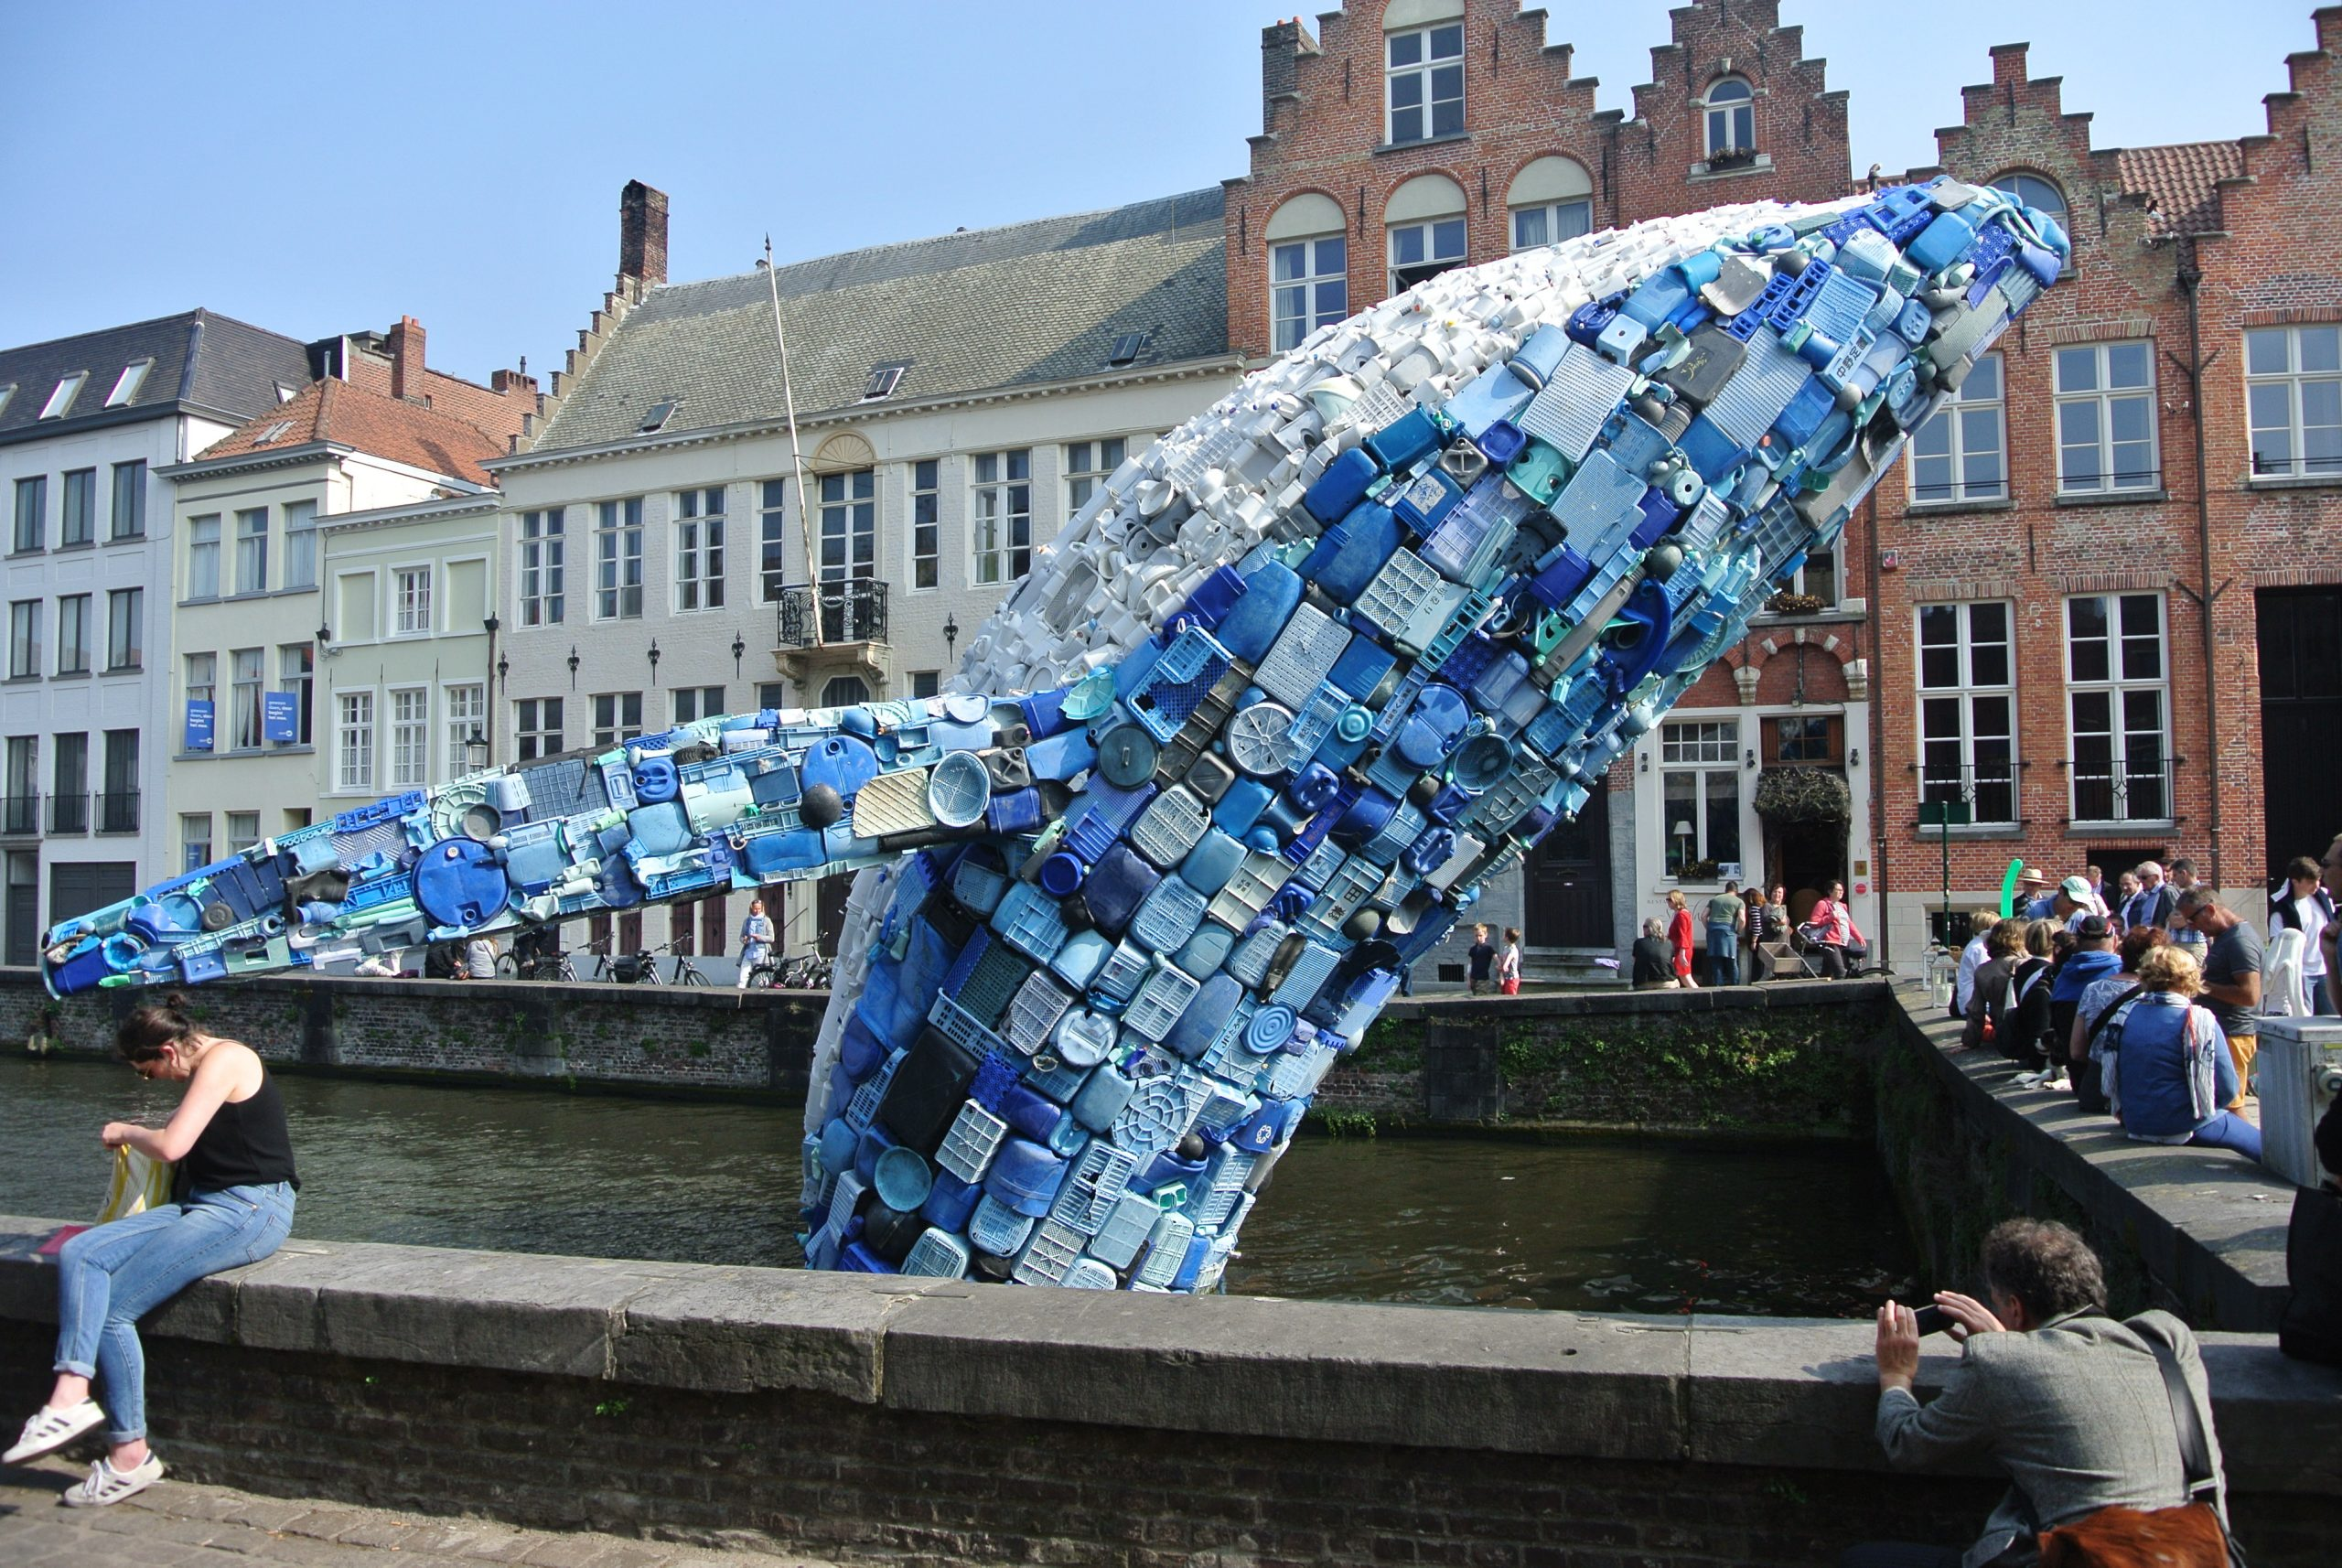 Skyscraper / the Bruges Whale : Photo by Juliamaud